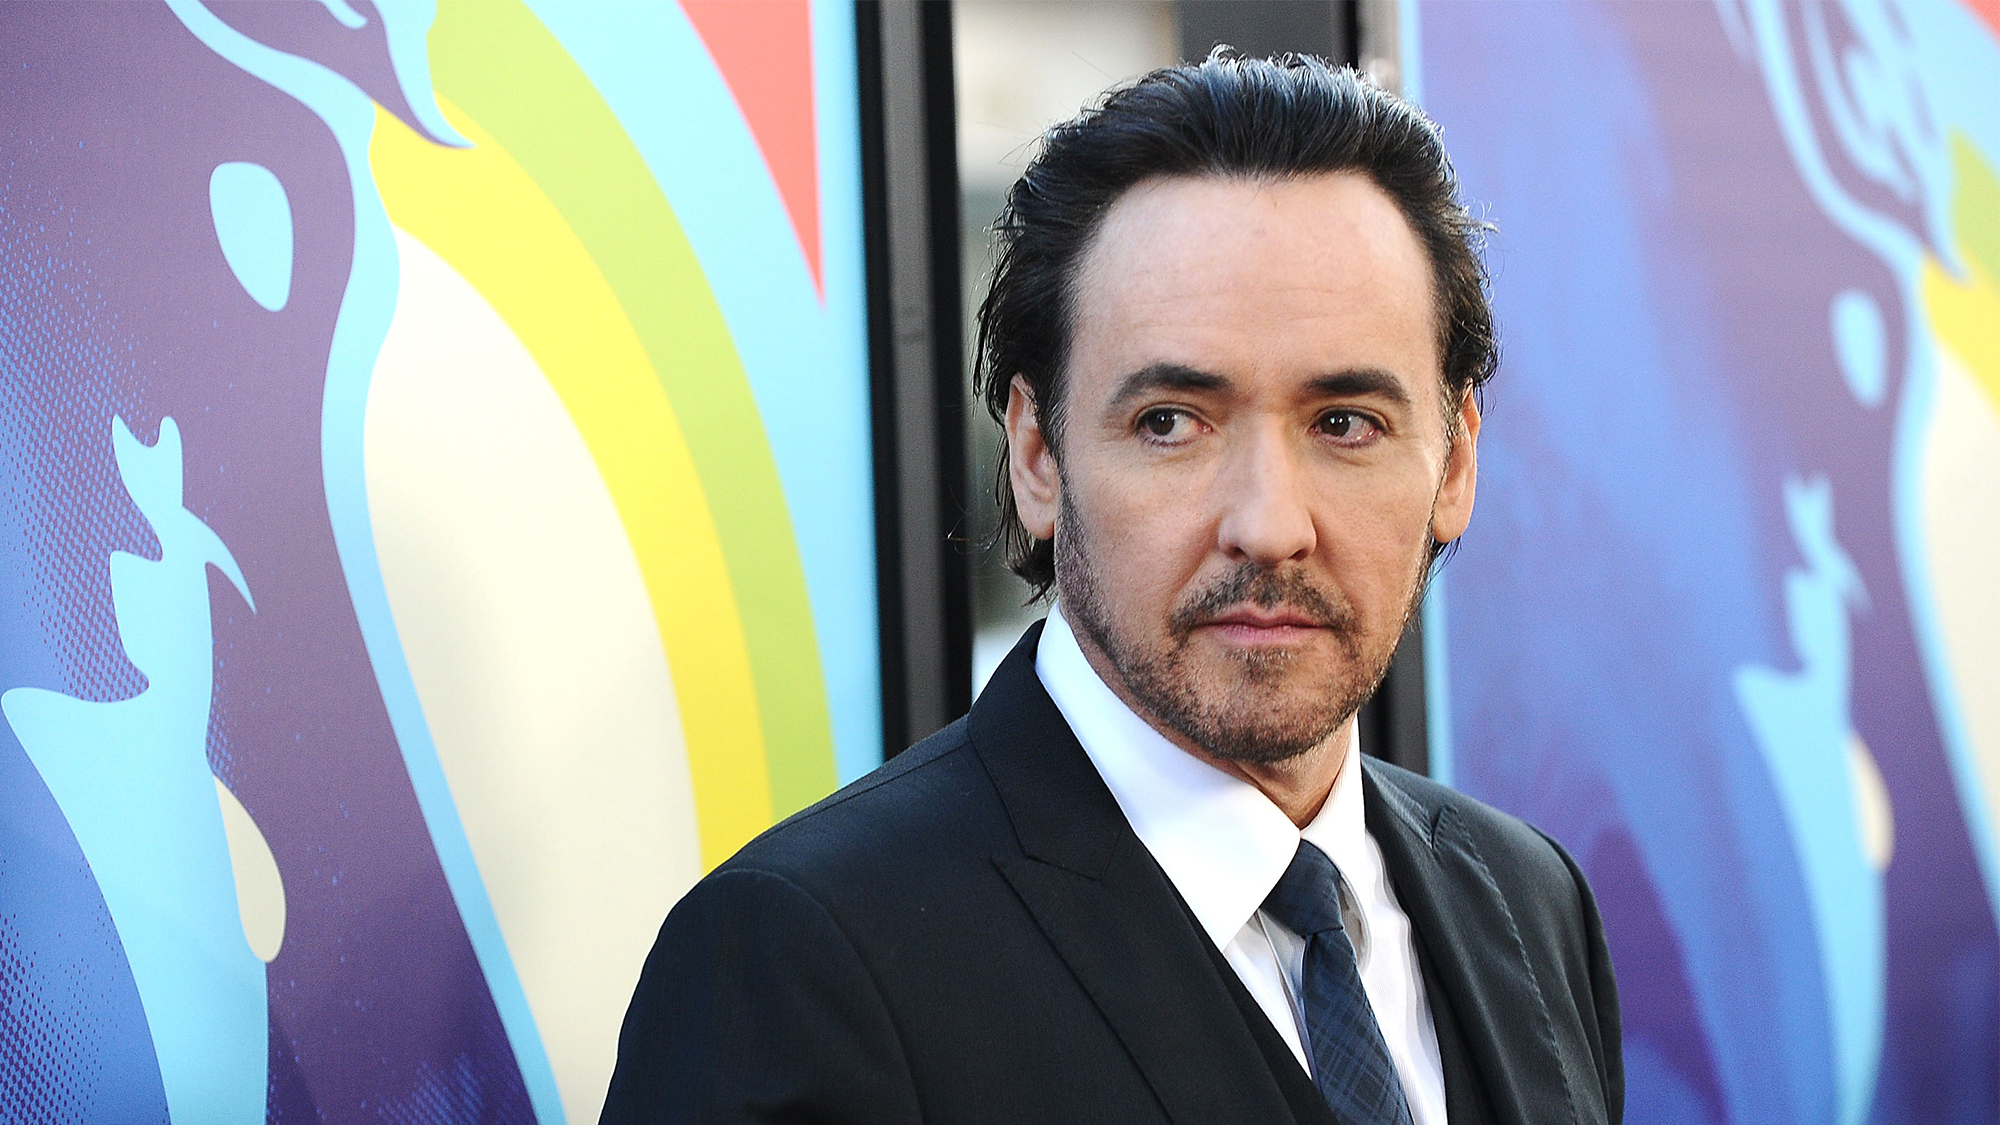 Westlake Legal Group john-cusack-f21375c74bf04510VgnVCM100000d7c1a8c0____ John Cusack blames 'bot' after being accused of sharing anti-Semitic tweet Joseph Wulfsohn fox-news/world/religion/controversies fox-news/tech/companies/twitter fox-news/entertainment/media fox-news/entertainment fox news fnc/entertainment fnc e8c085c8-0d58-57b4-b0a7-2cd5607eadb7 article